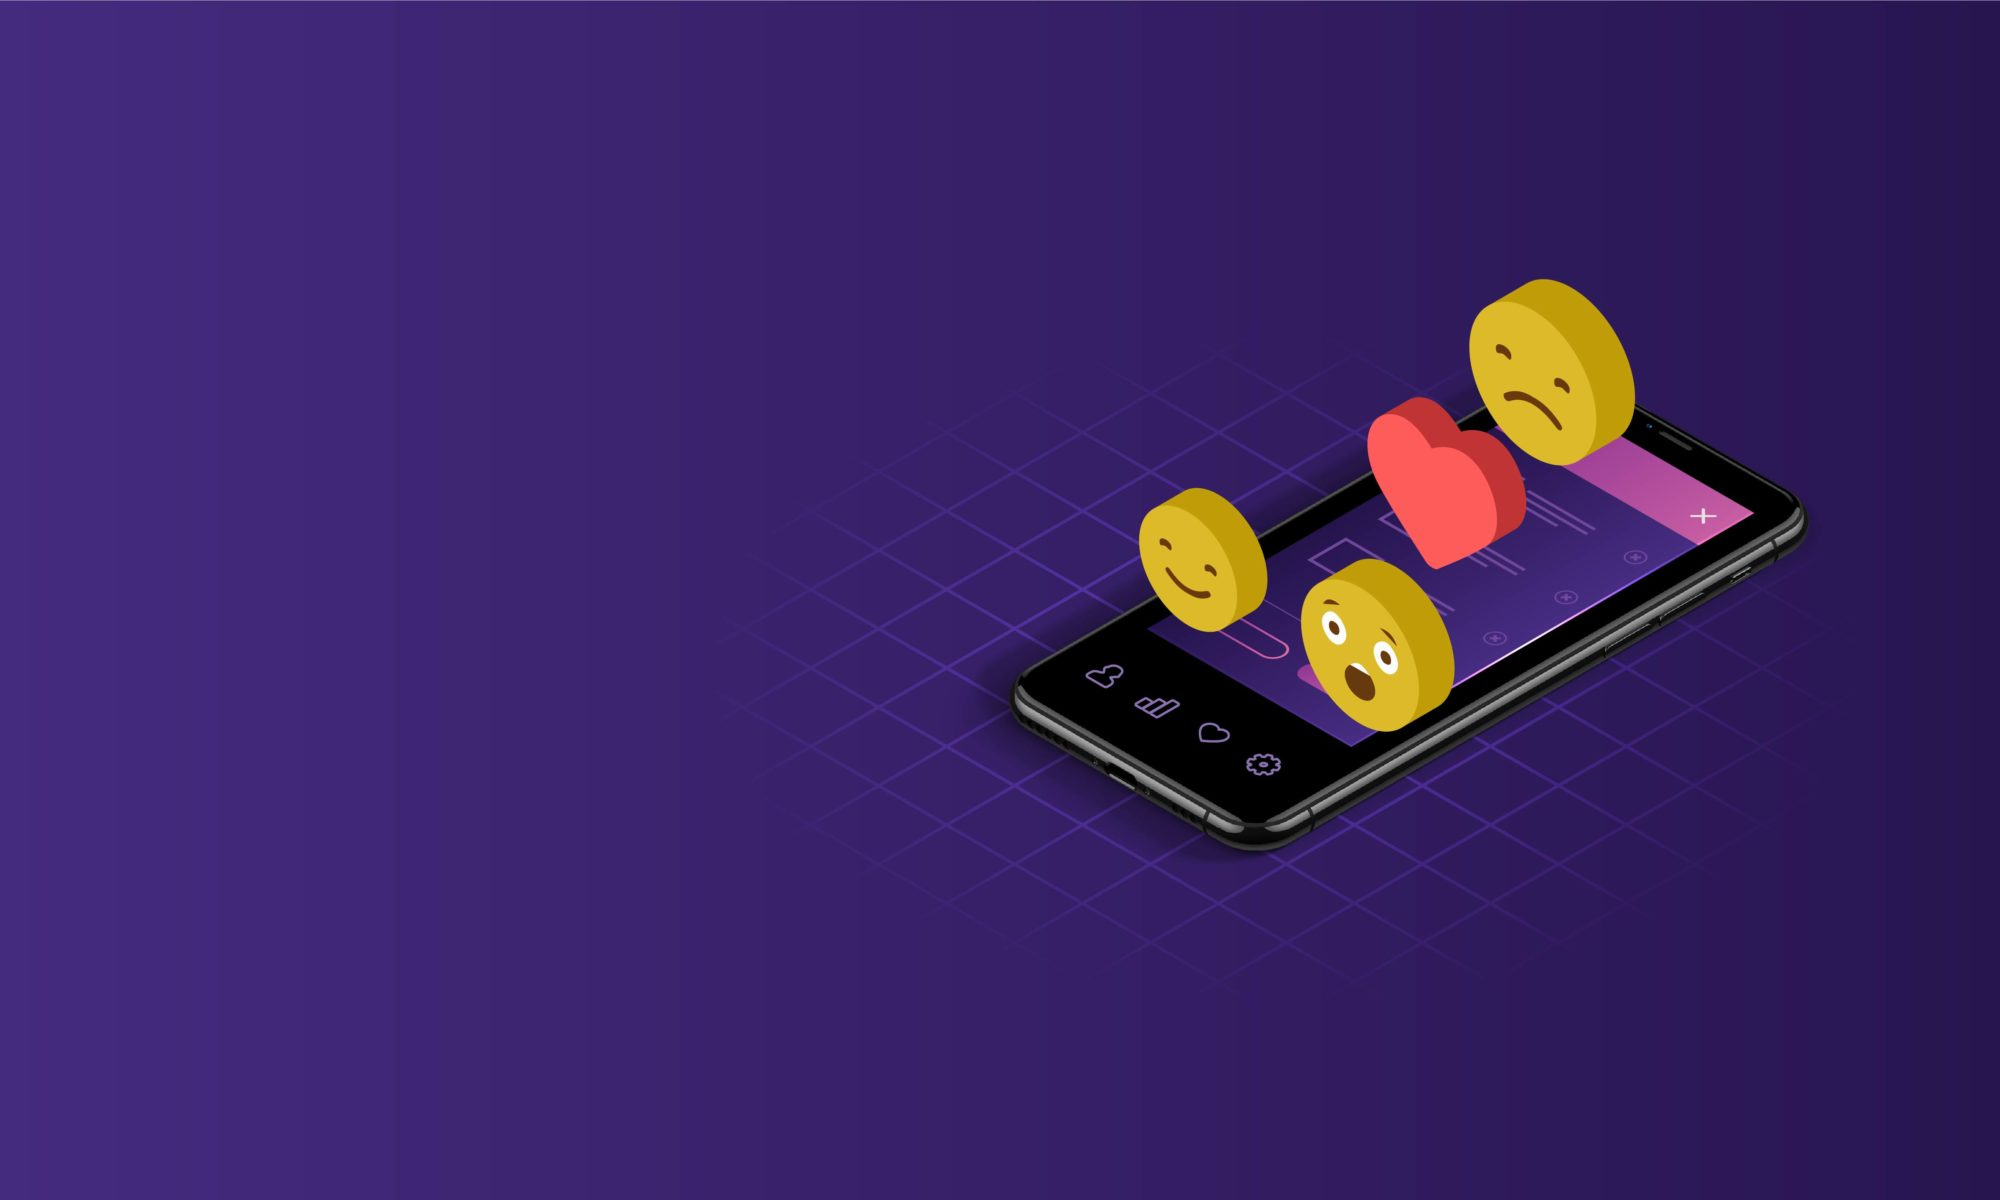 Designing UI with 'Emotions'